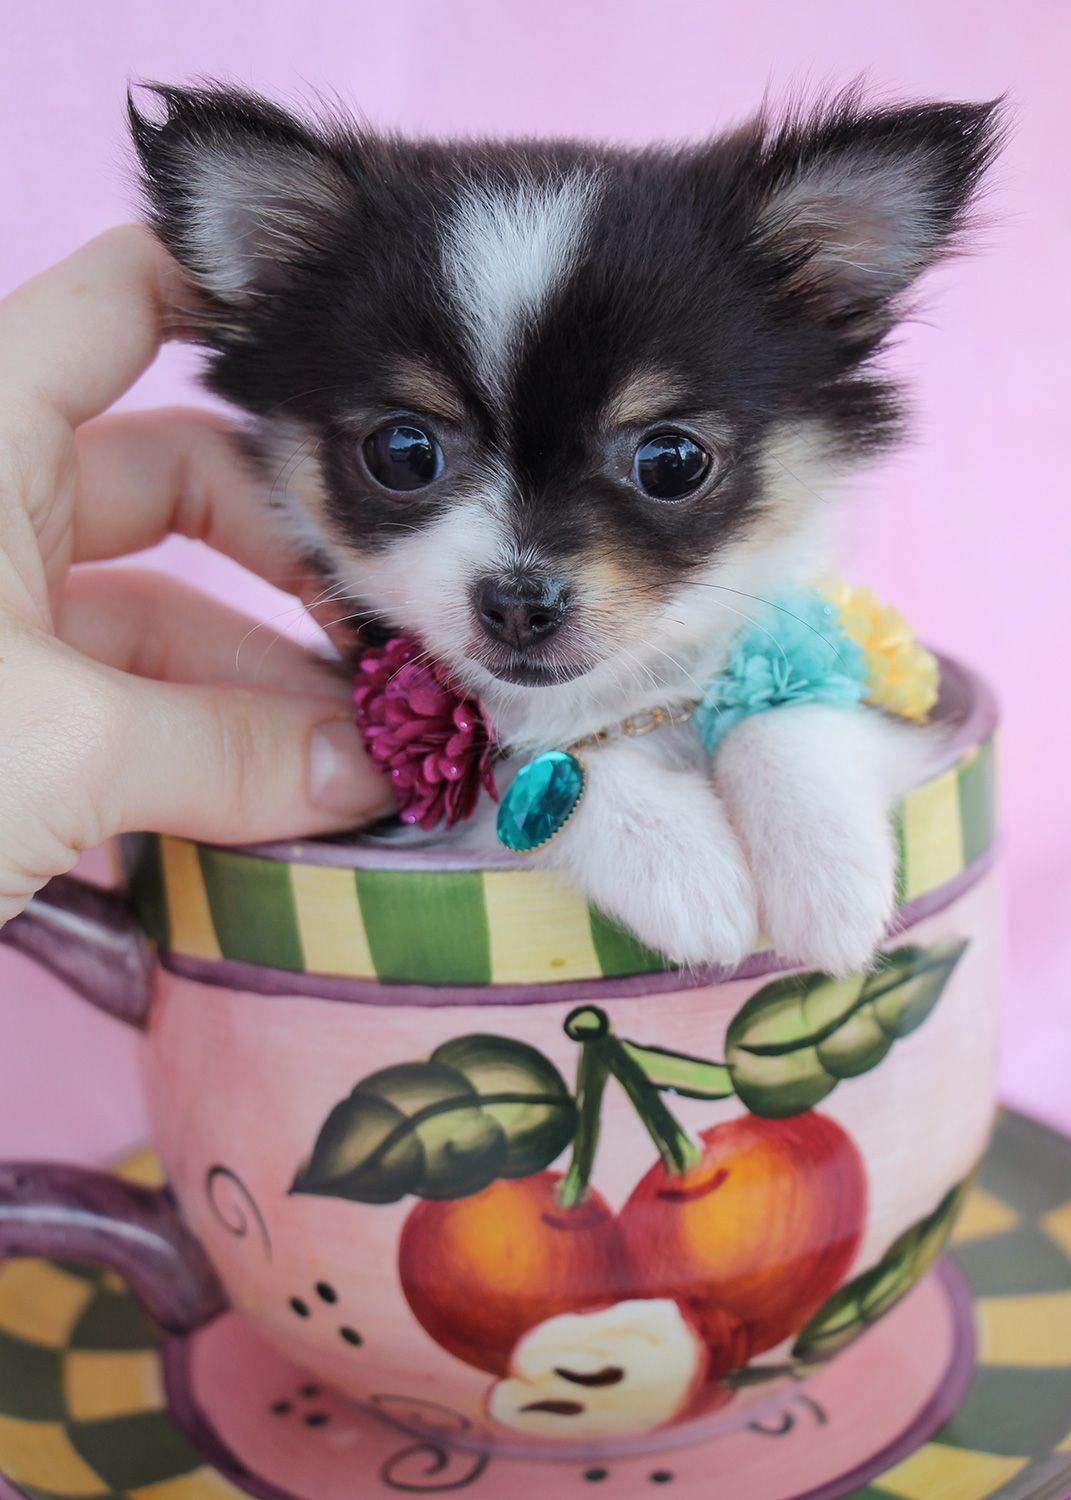 Teacup Chihuahua Puppies for Sale puppies Pinterest